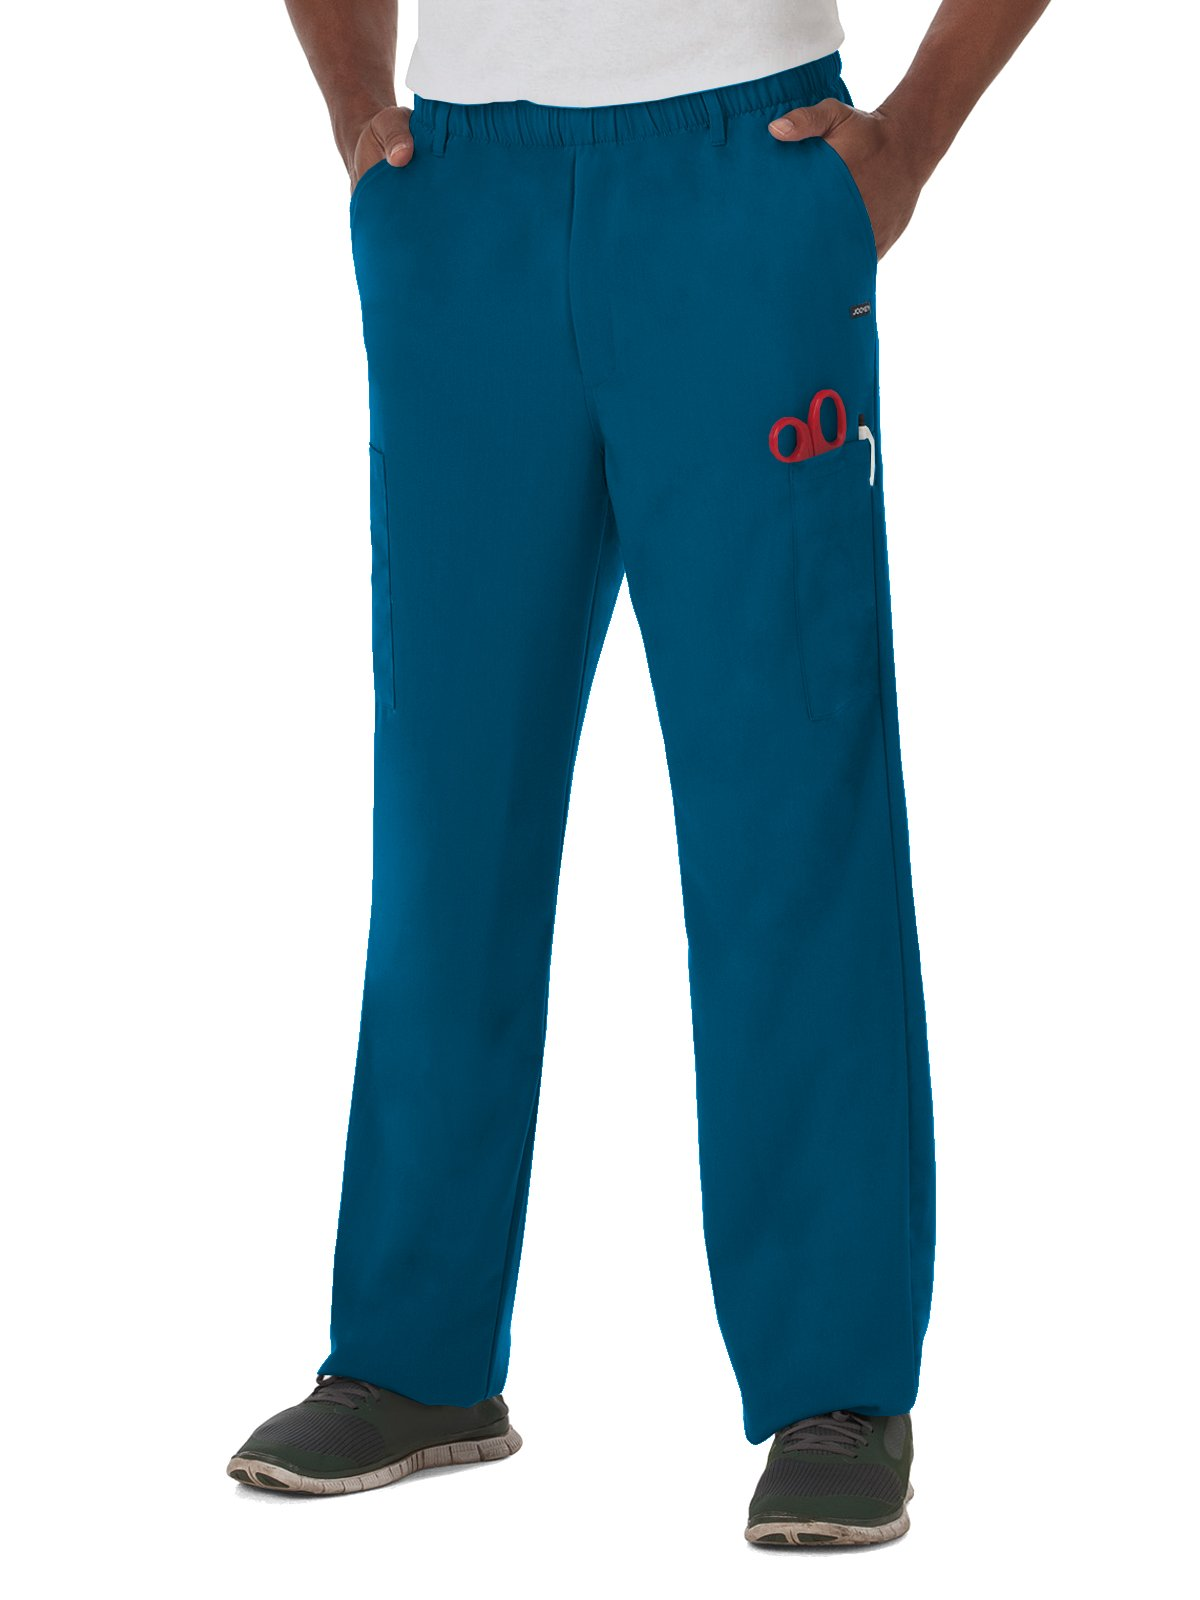 Classic Fit Collection by Jockey Men's 7 Pocket Scrub Pant X-Large Caribbean Blue by Jockey